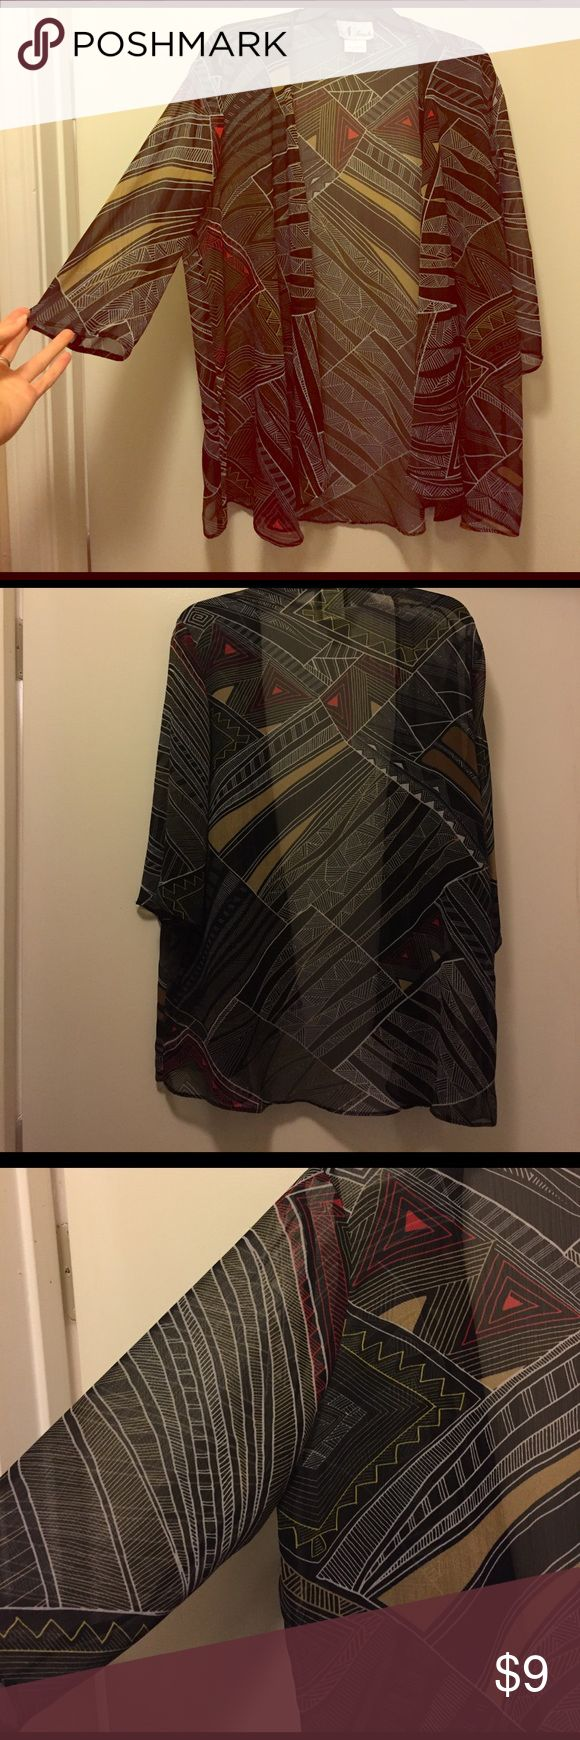 Sheer tribal cardigan/ kimono Sheer kimono or cardigan. Great for spring and summer weather. Make an offer! N touch Sweaters Shrugs & Ponchos